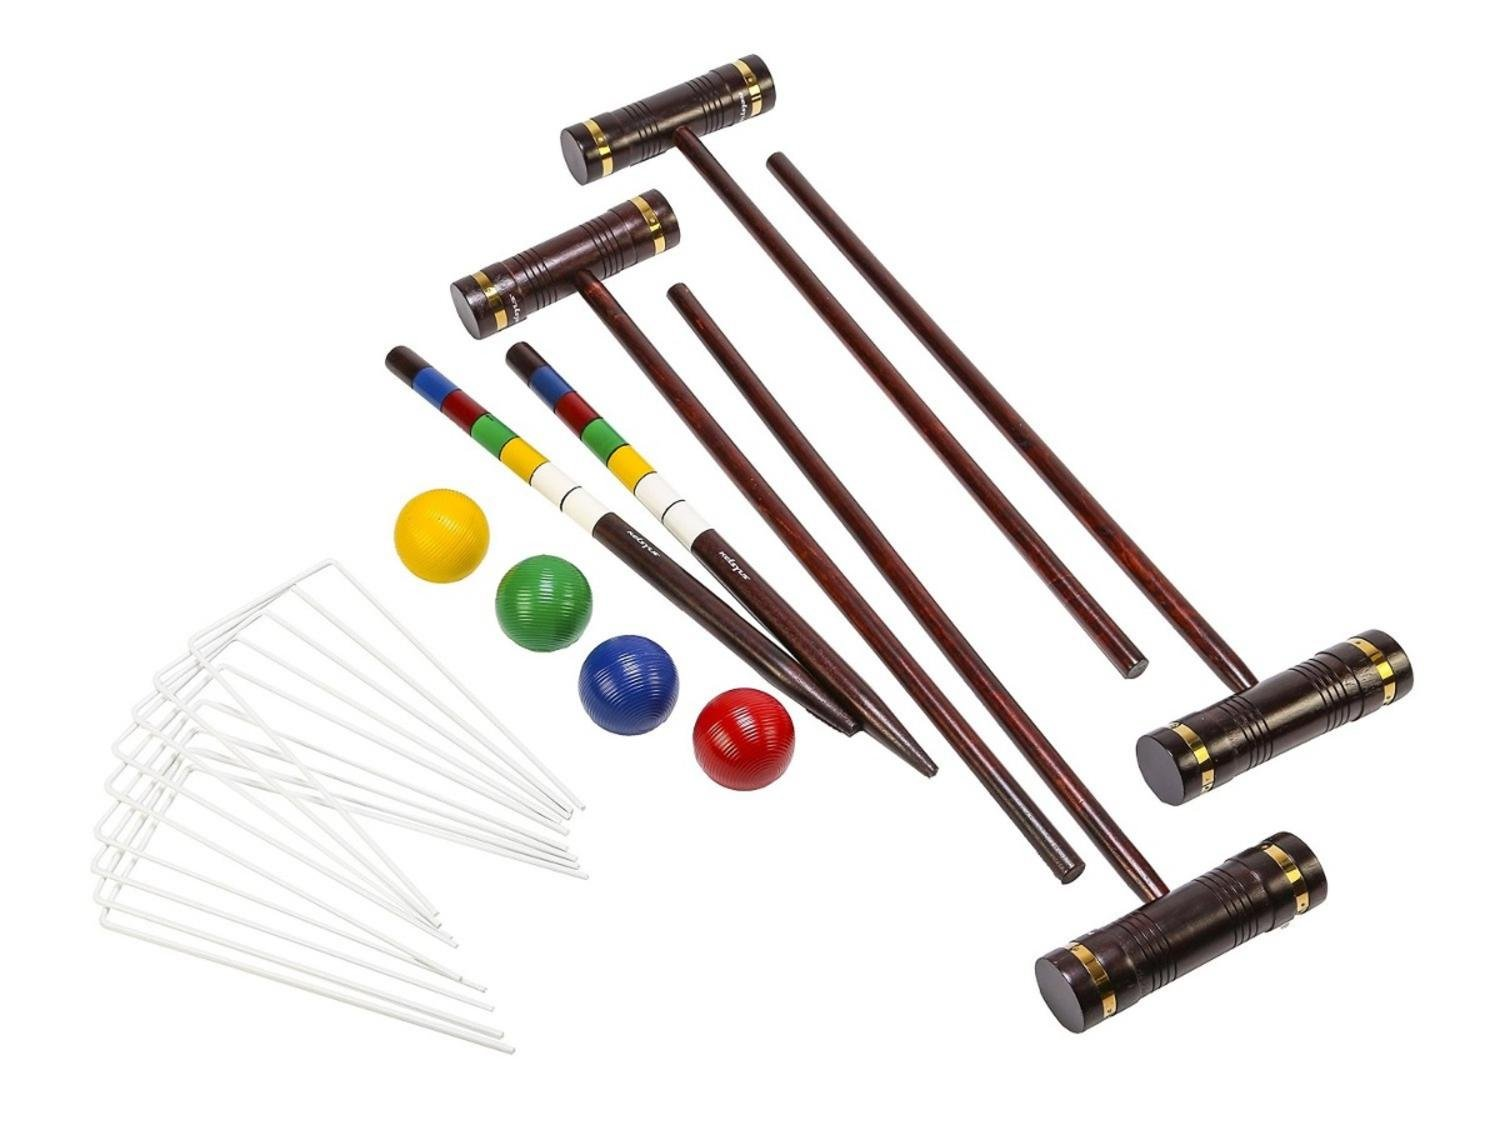 Kelsyus Premium Wooden Croquet Recreational Game Set by Swimway